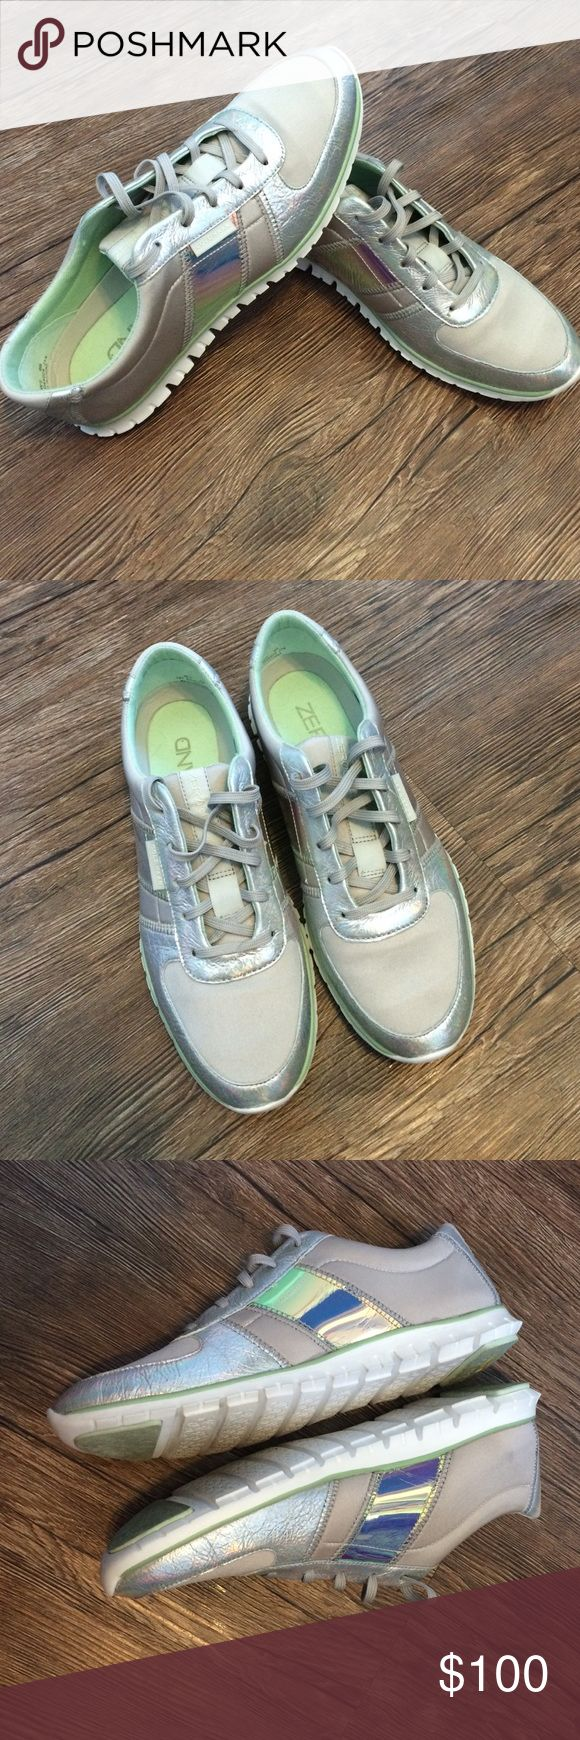 Holographic Cole Hann shoes Only worn once! absolutely NO TRADES Reasonable offers only considered through the 'make an offer' option  NO OUTSIDE TRANSACTIONS Cole Haan Shoes Sneakers